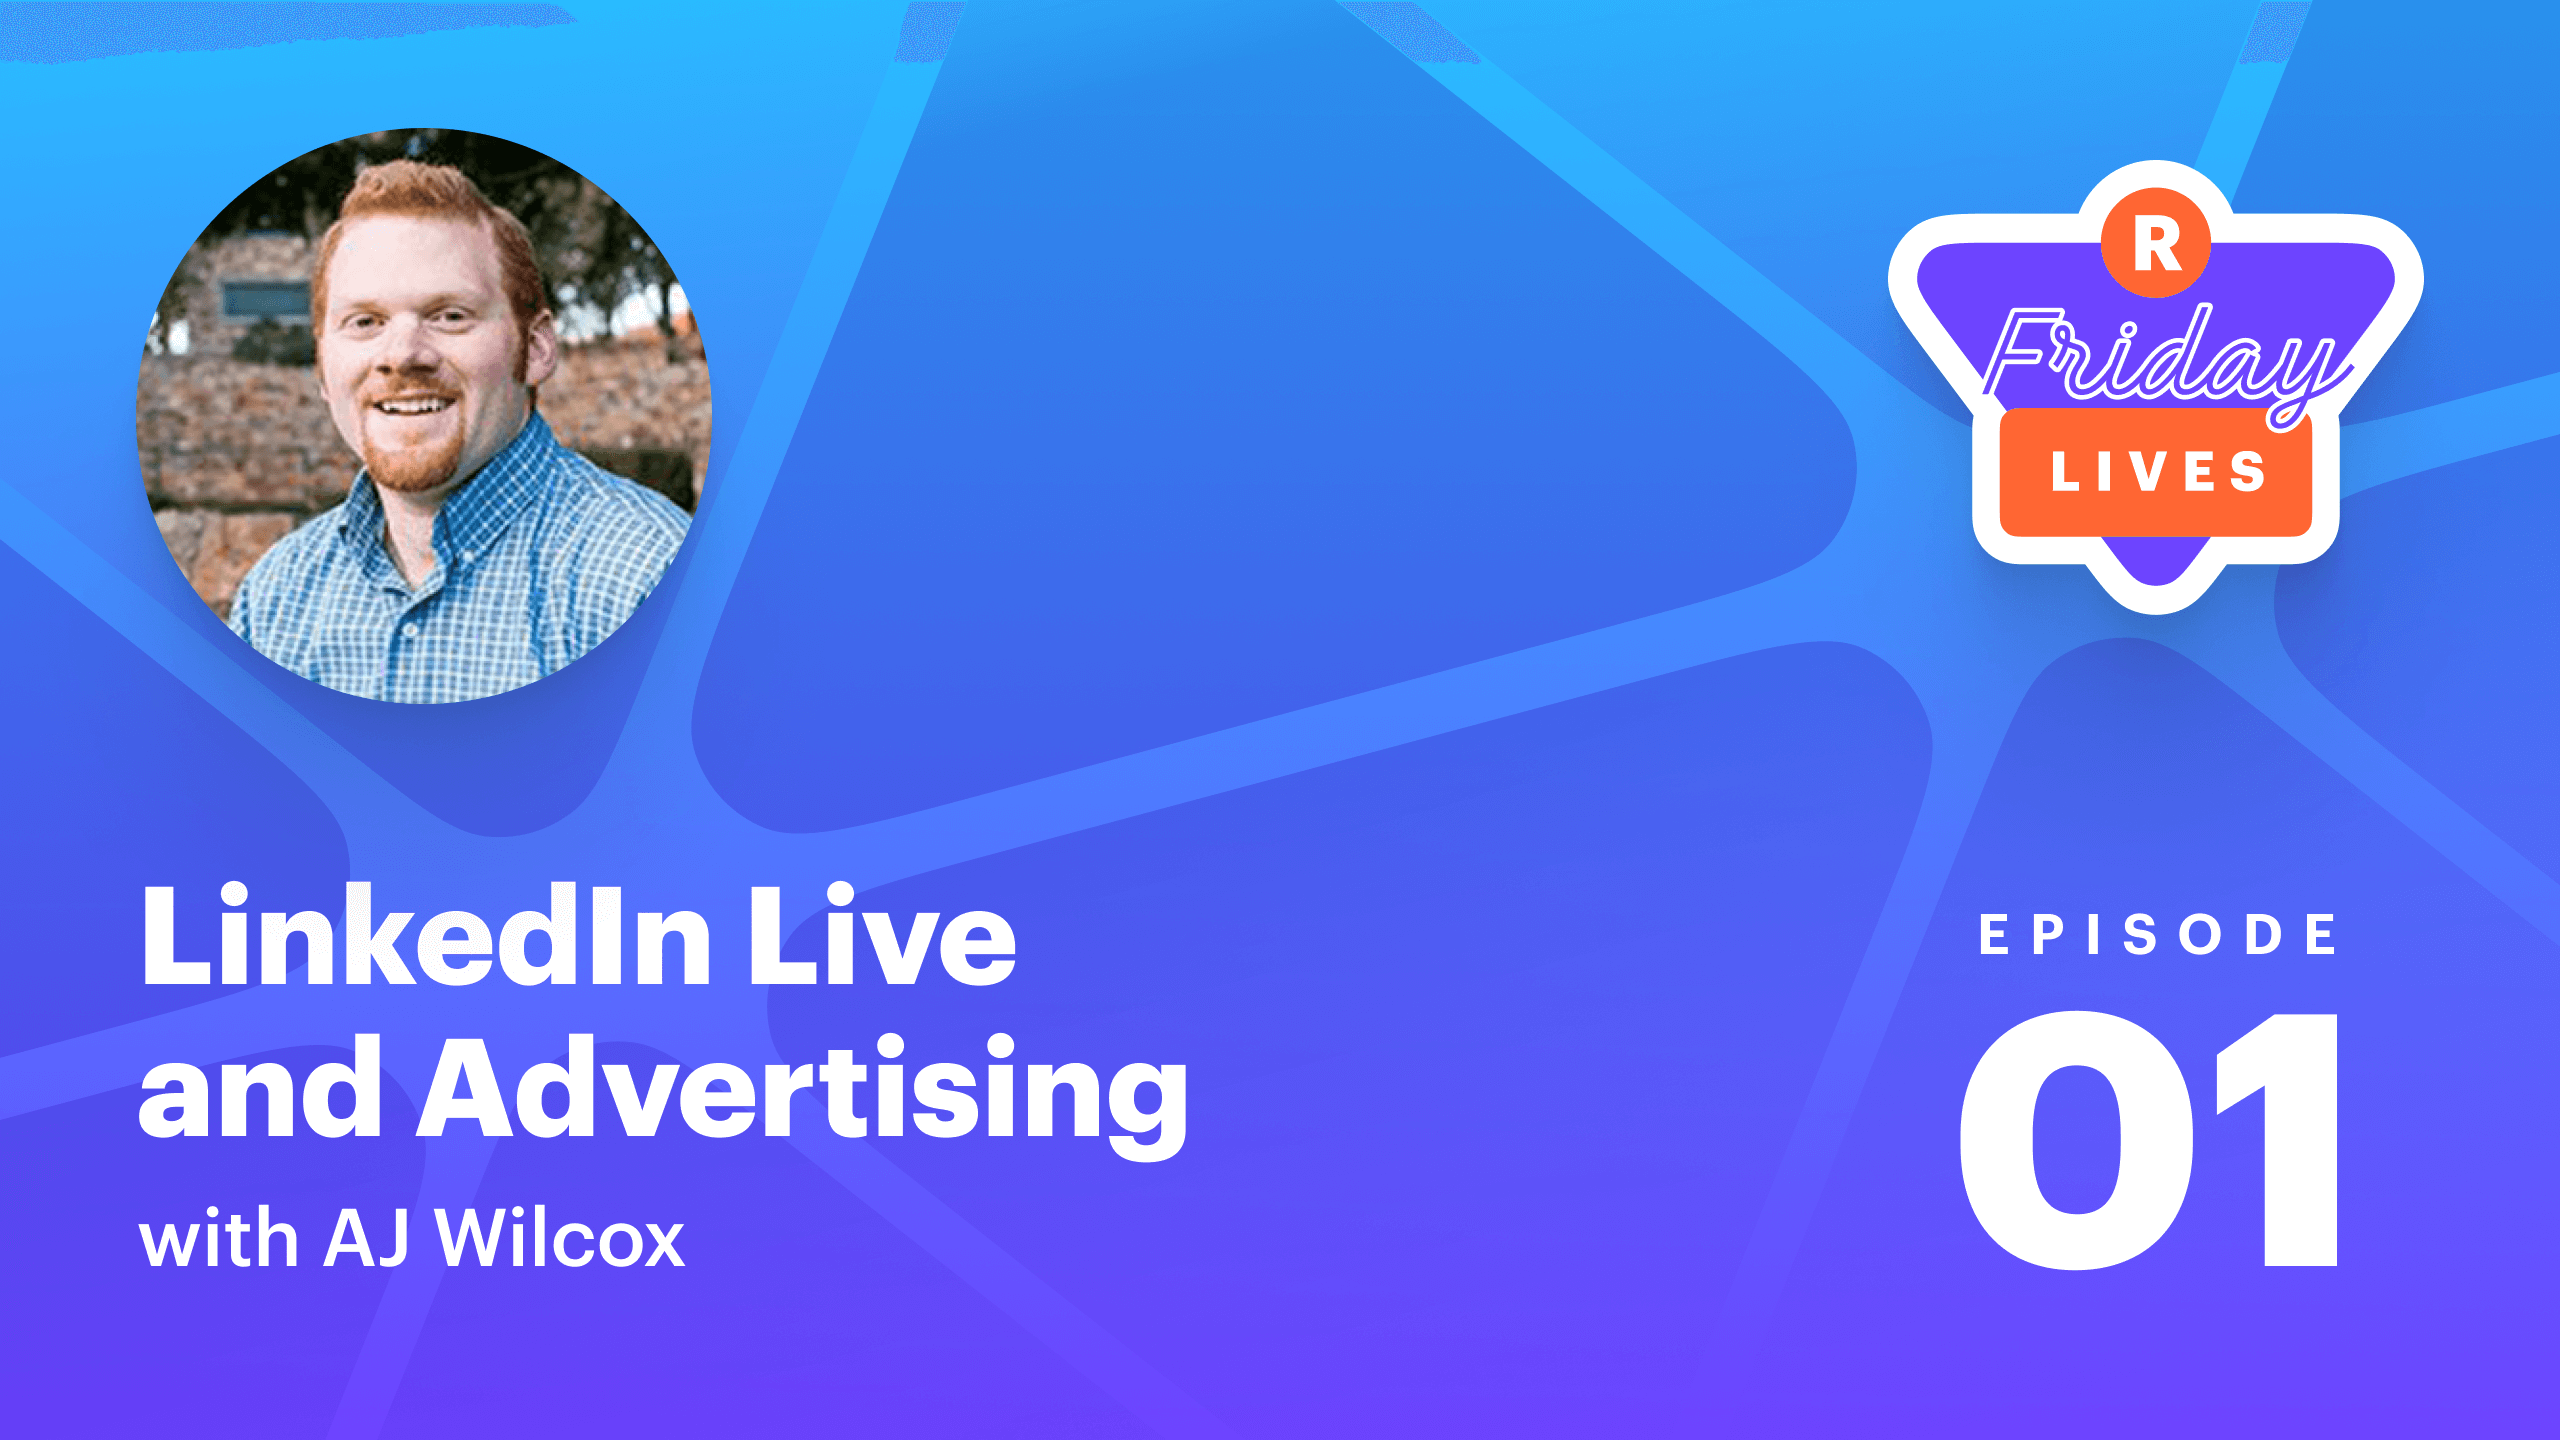 Friday Lives 01 — LinkedIn Live and advertising with AJ Wilcox